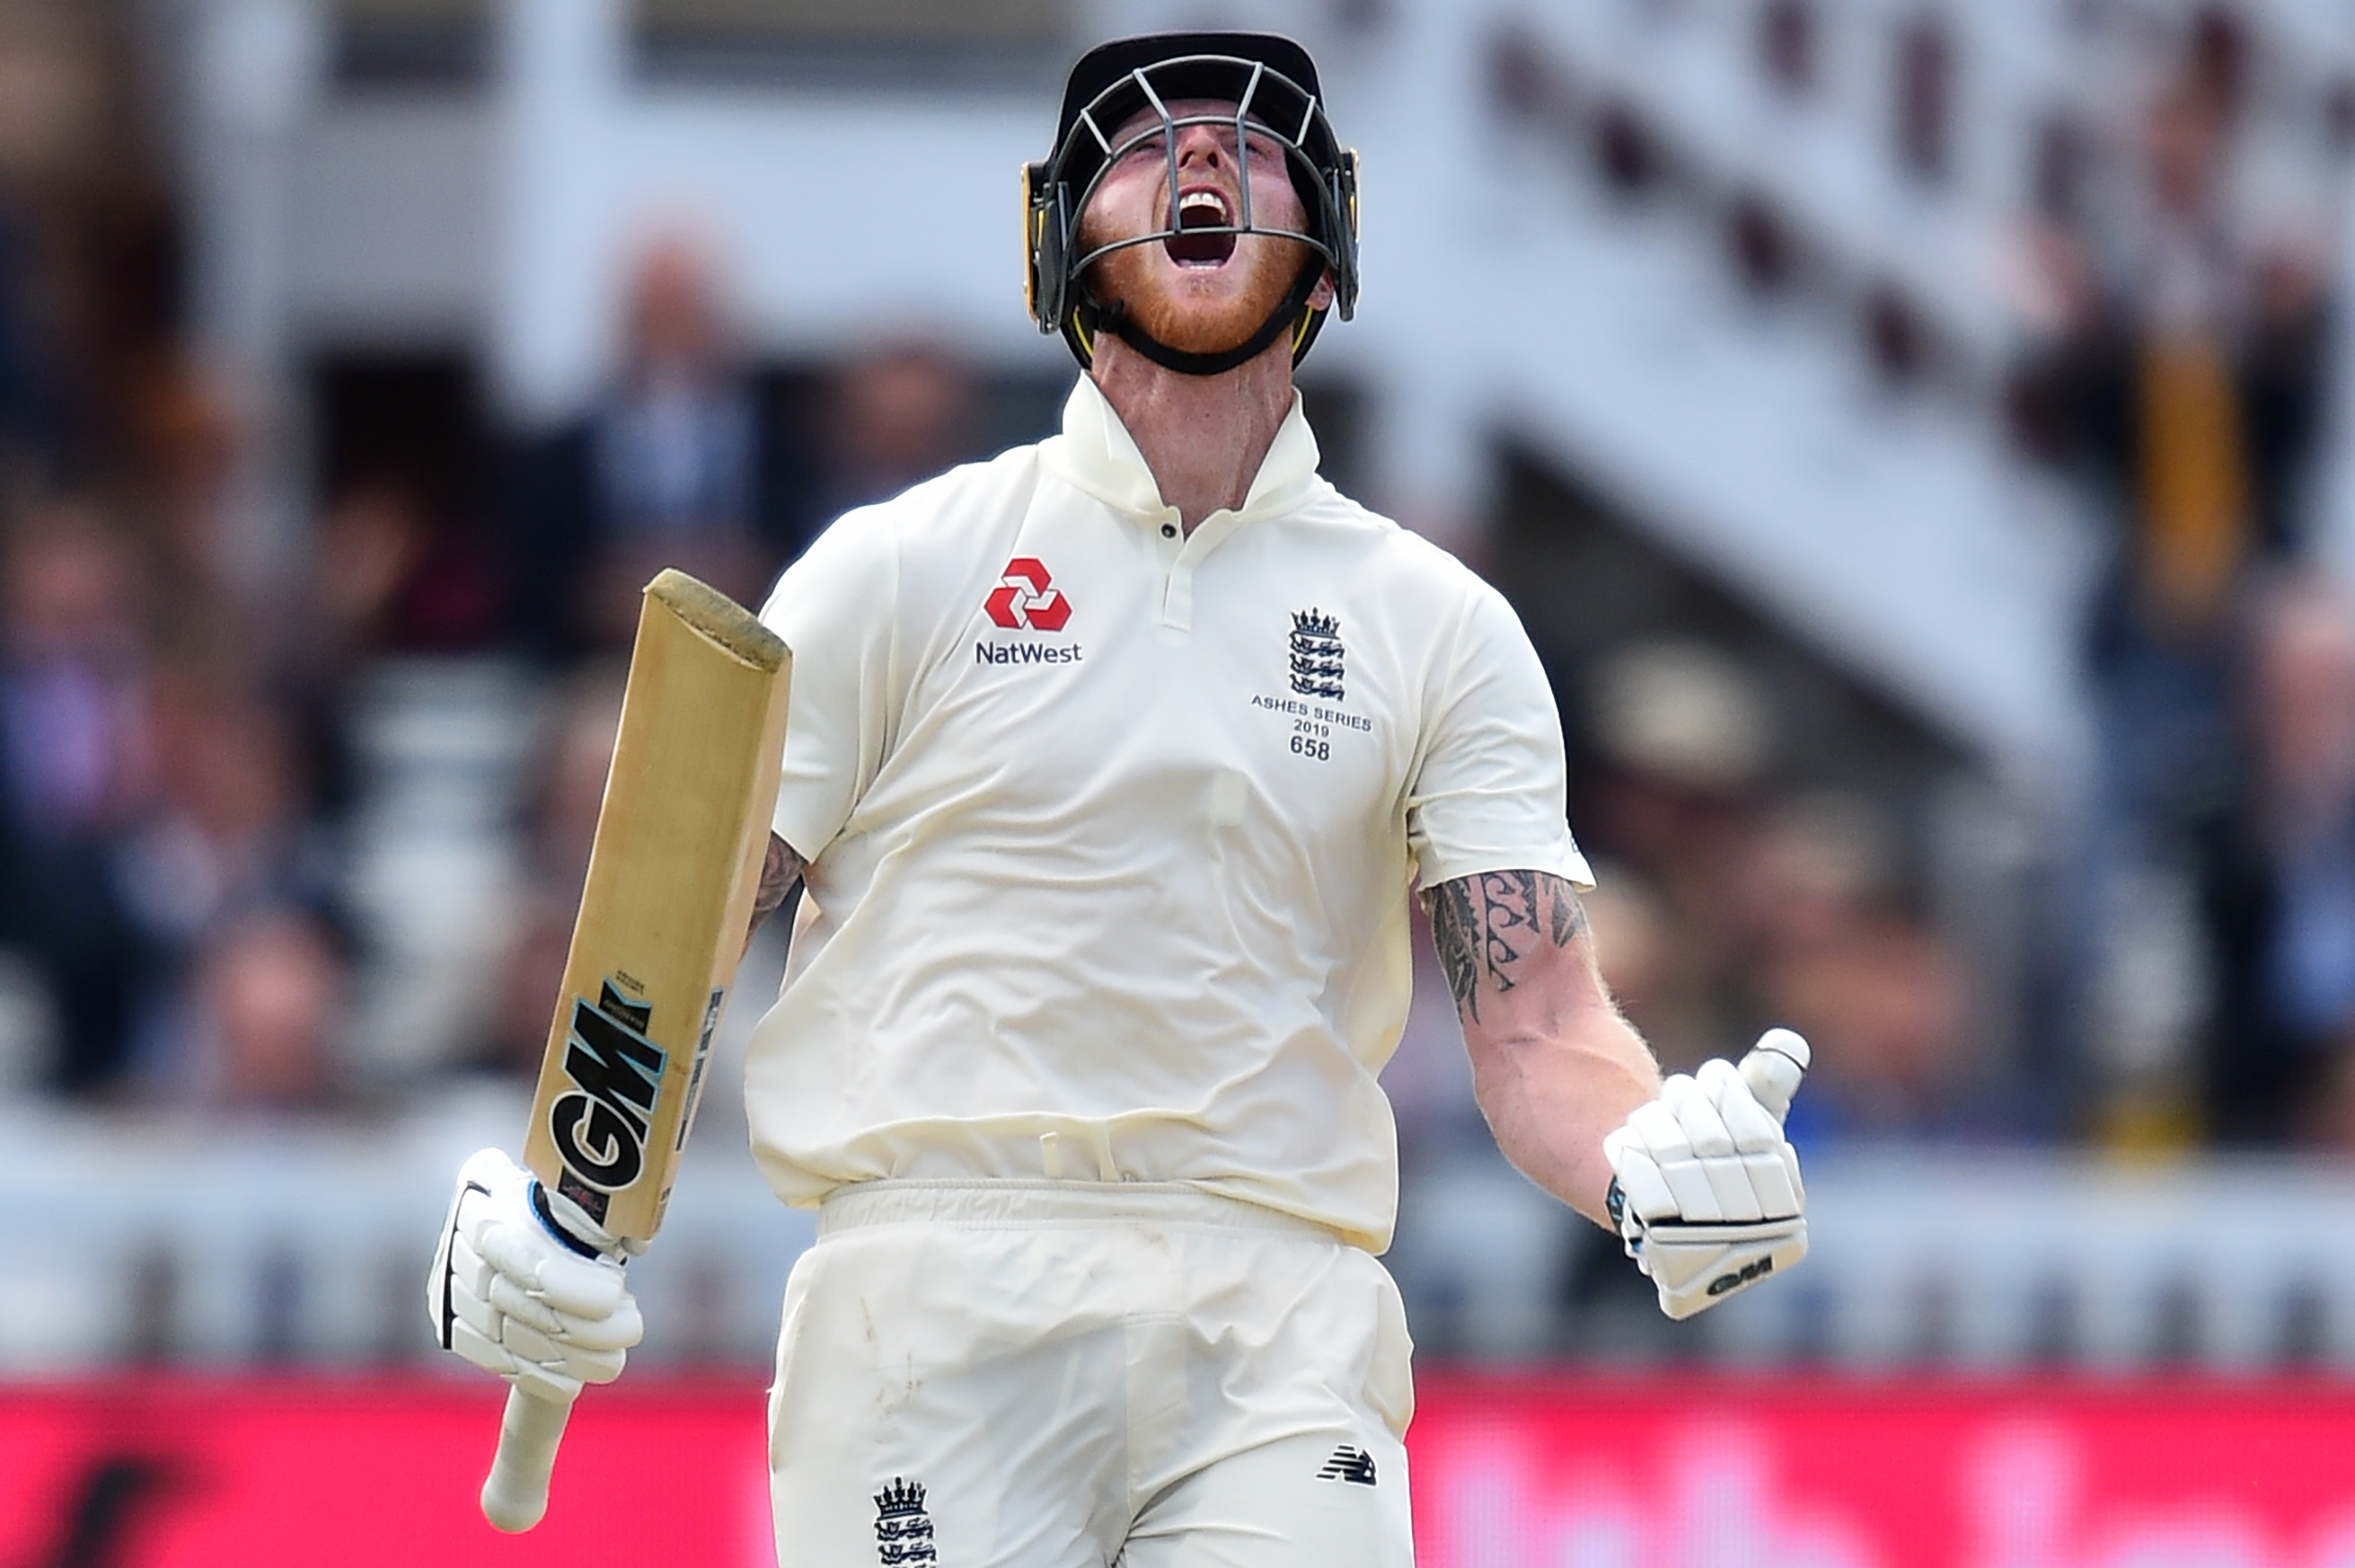 2nd Test, England v Australia, Specsavers Ashes Series 2019